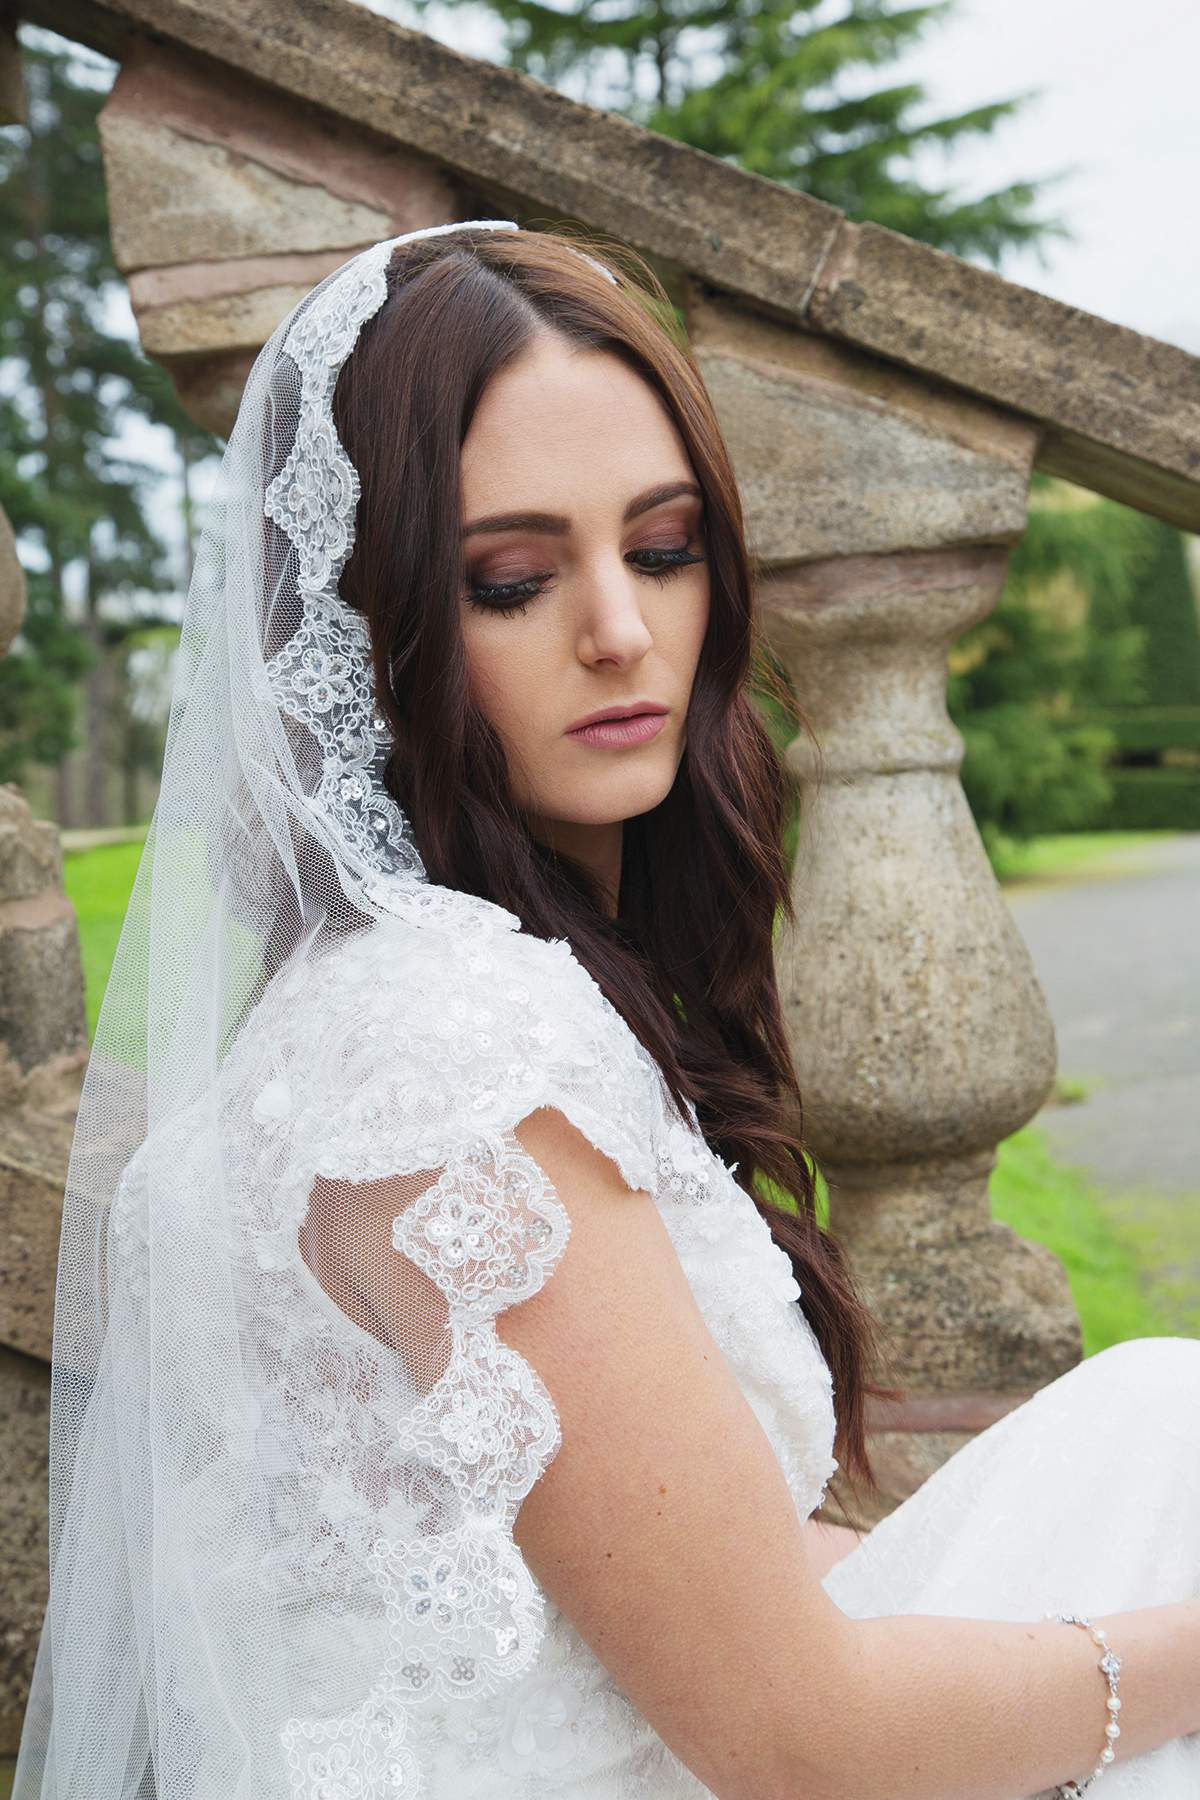 Laurel Lime Mantilla Lace Veil, £140